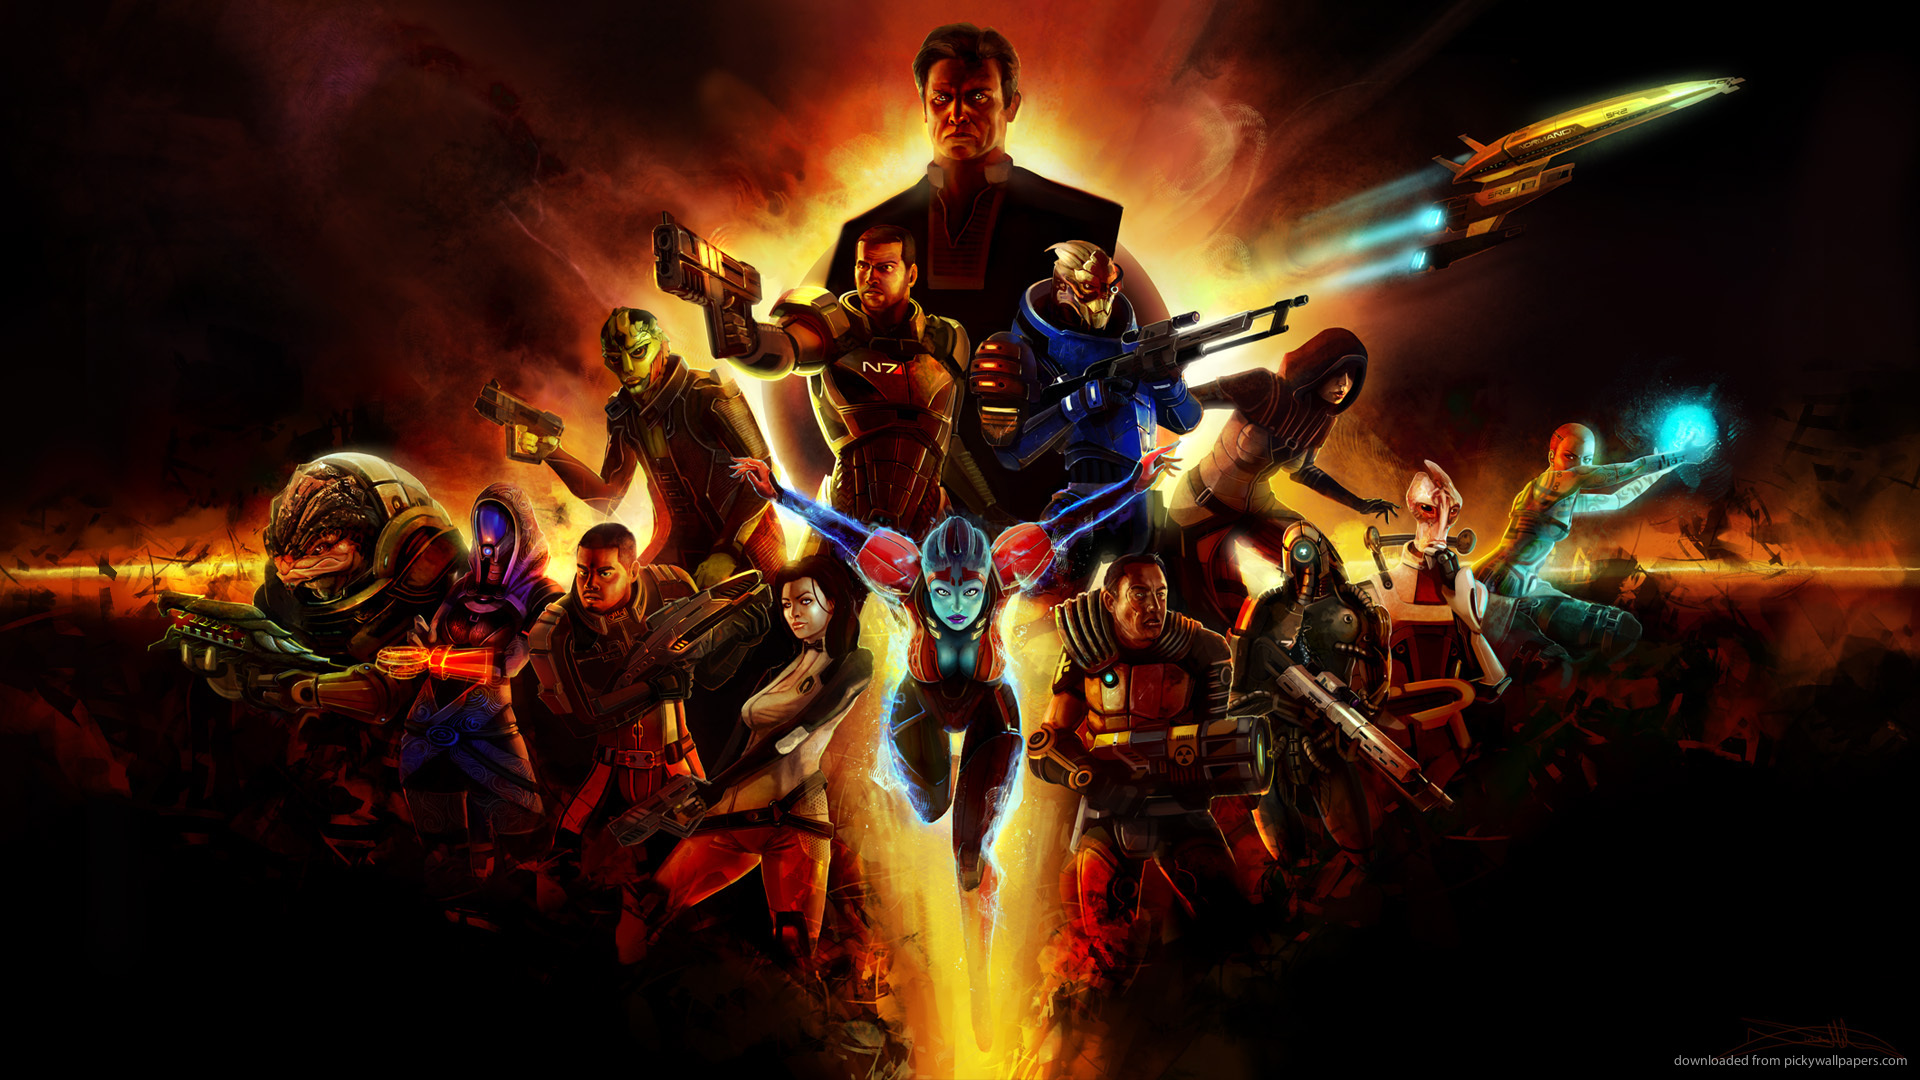 Mass Effect 2 Characters Fire Collage Screensaver For Amazon Kindle 3 1920x1080